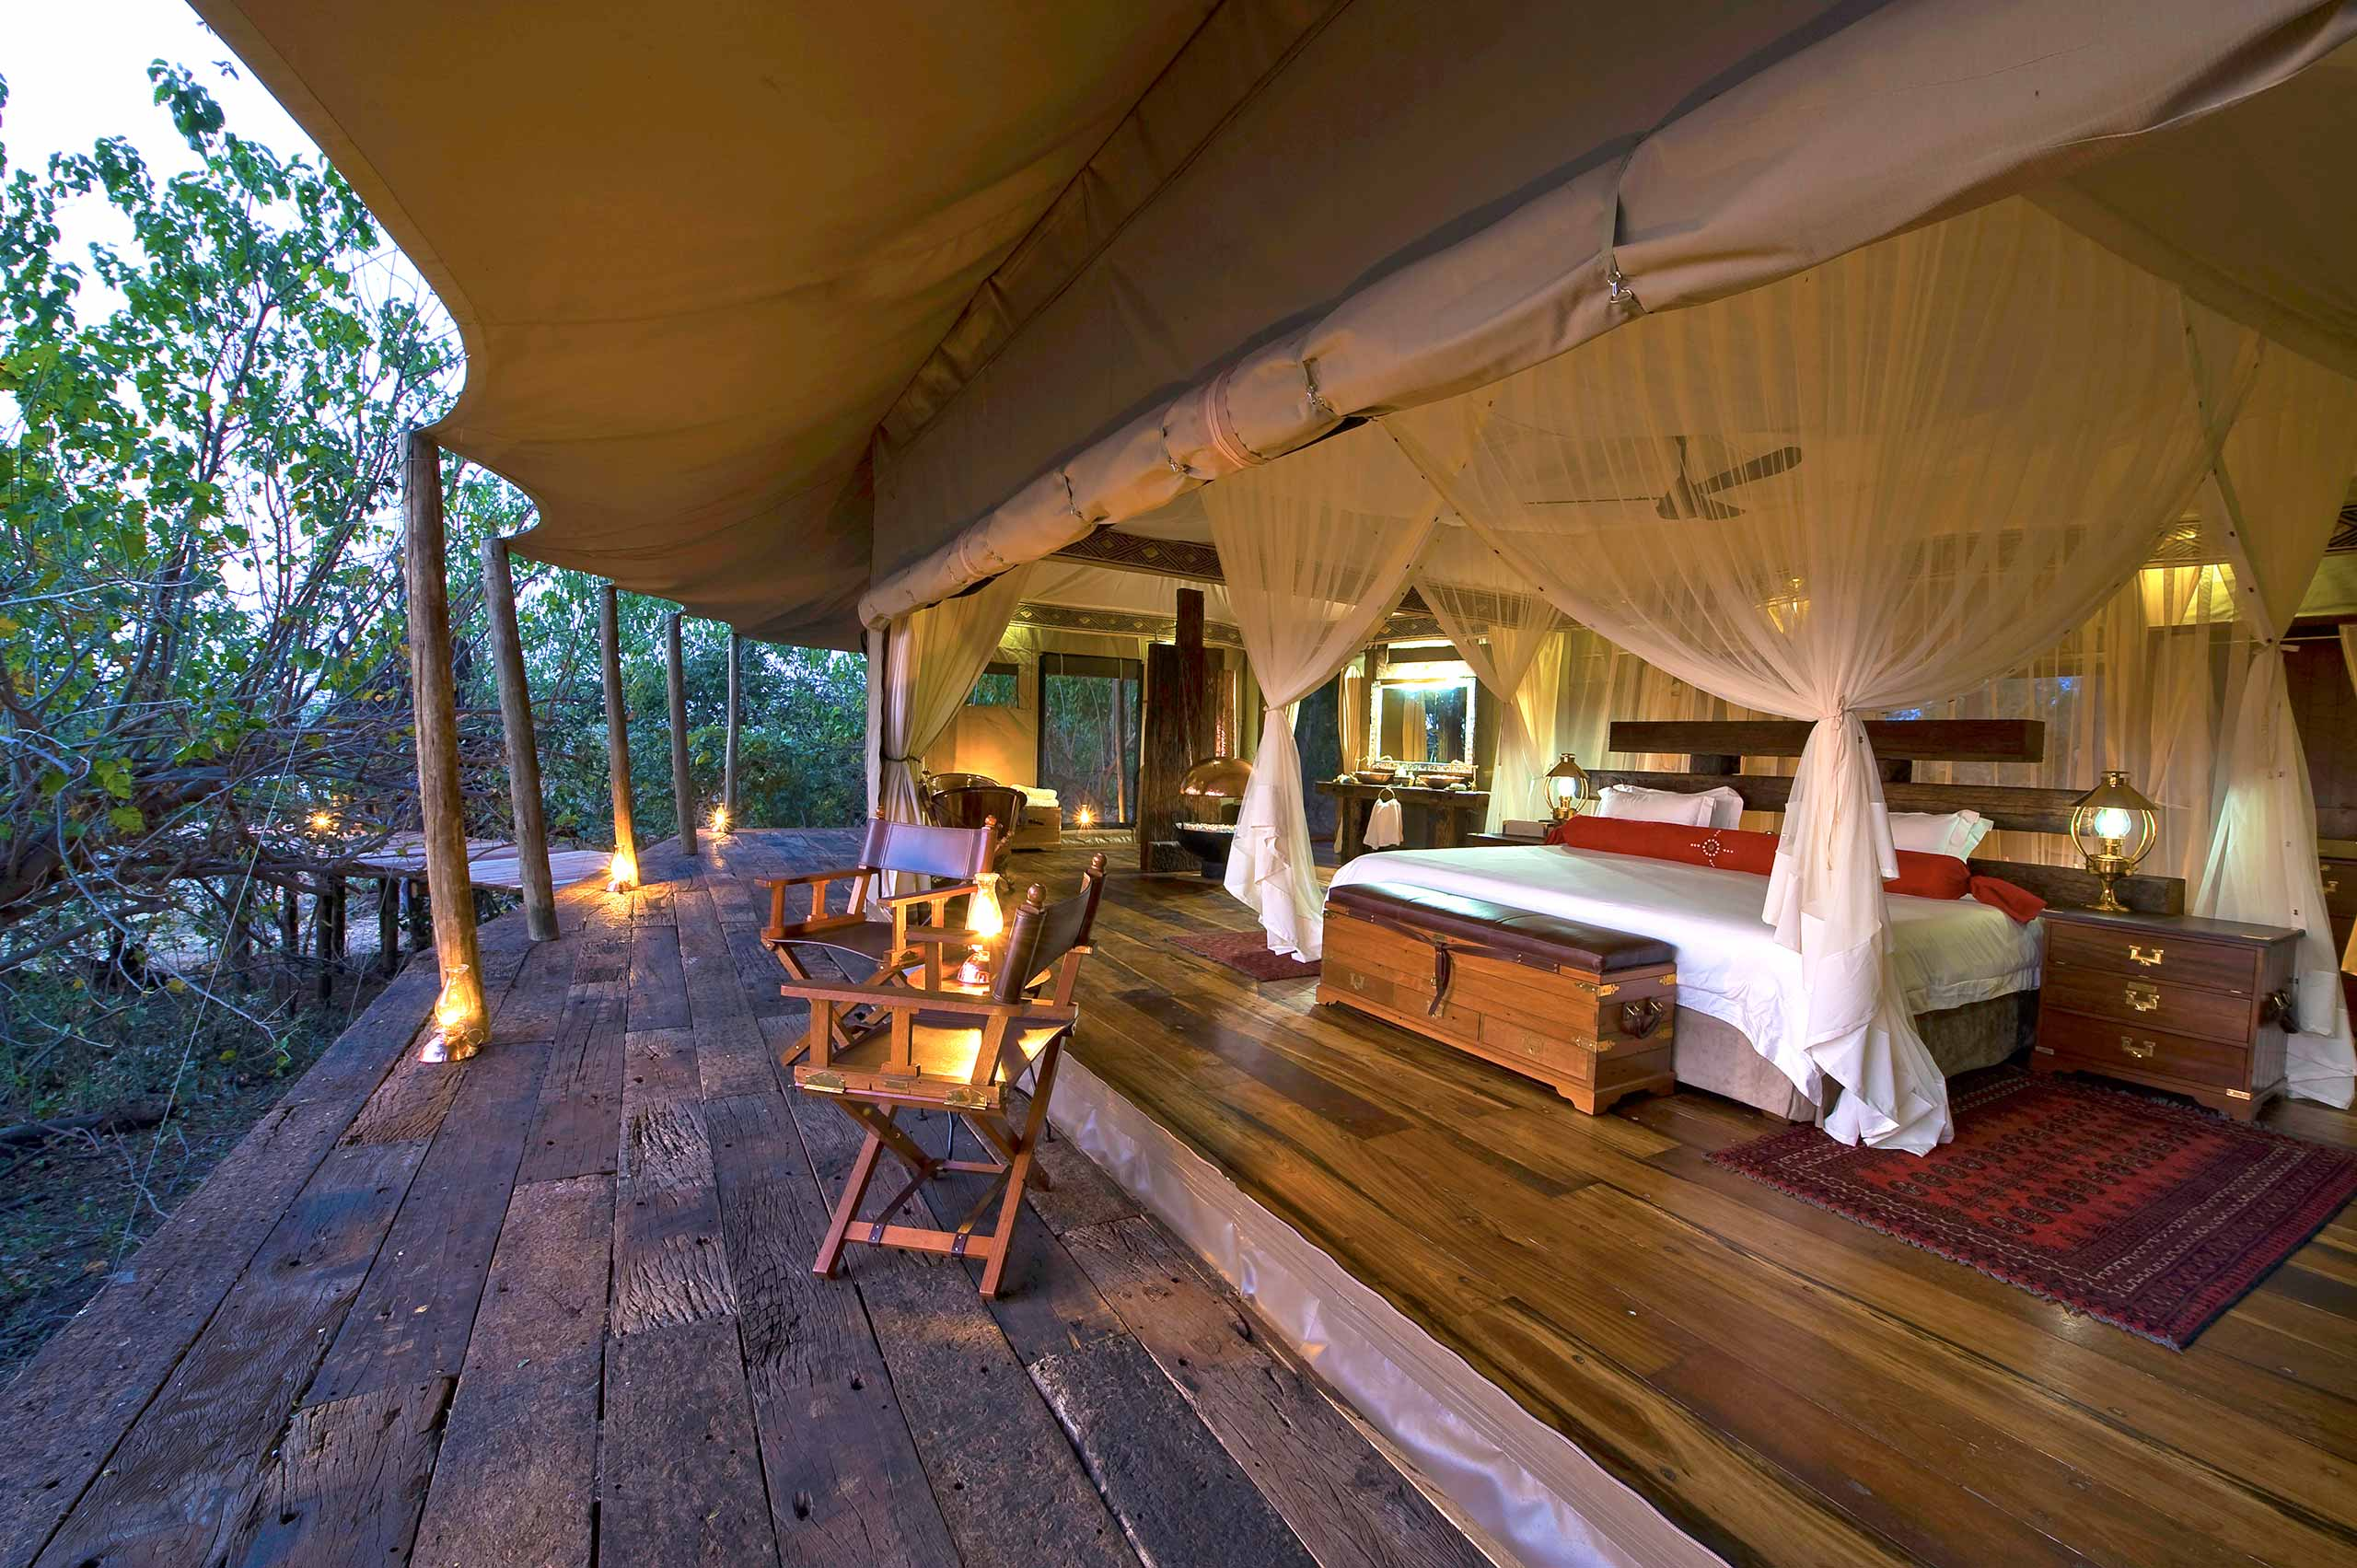 enkosi-africa-safari-botswana-selinda-Zarafa-Camp-Great-Plains-Conservation-guest-tent